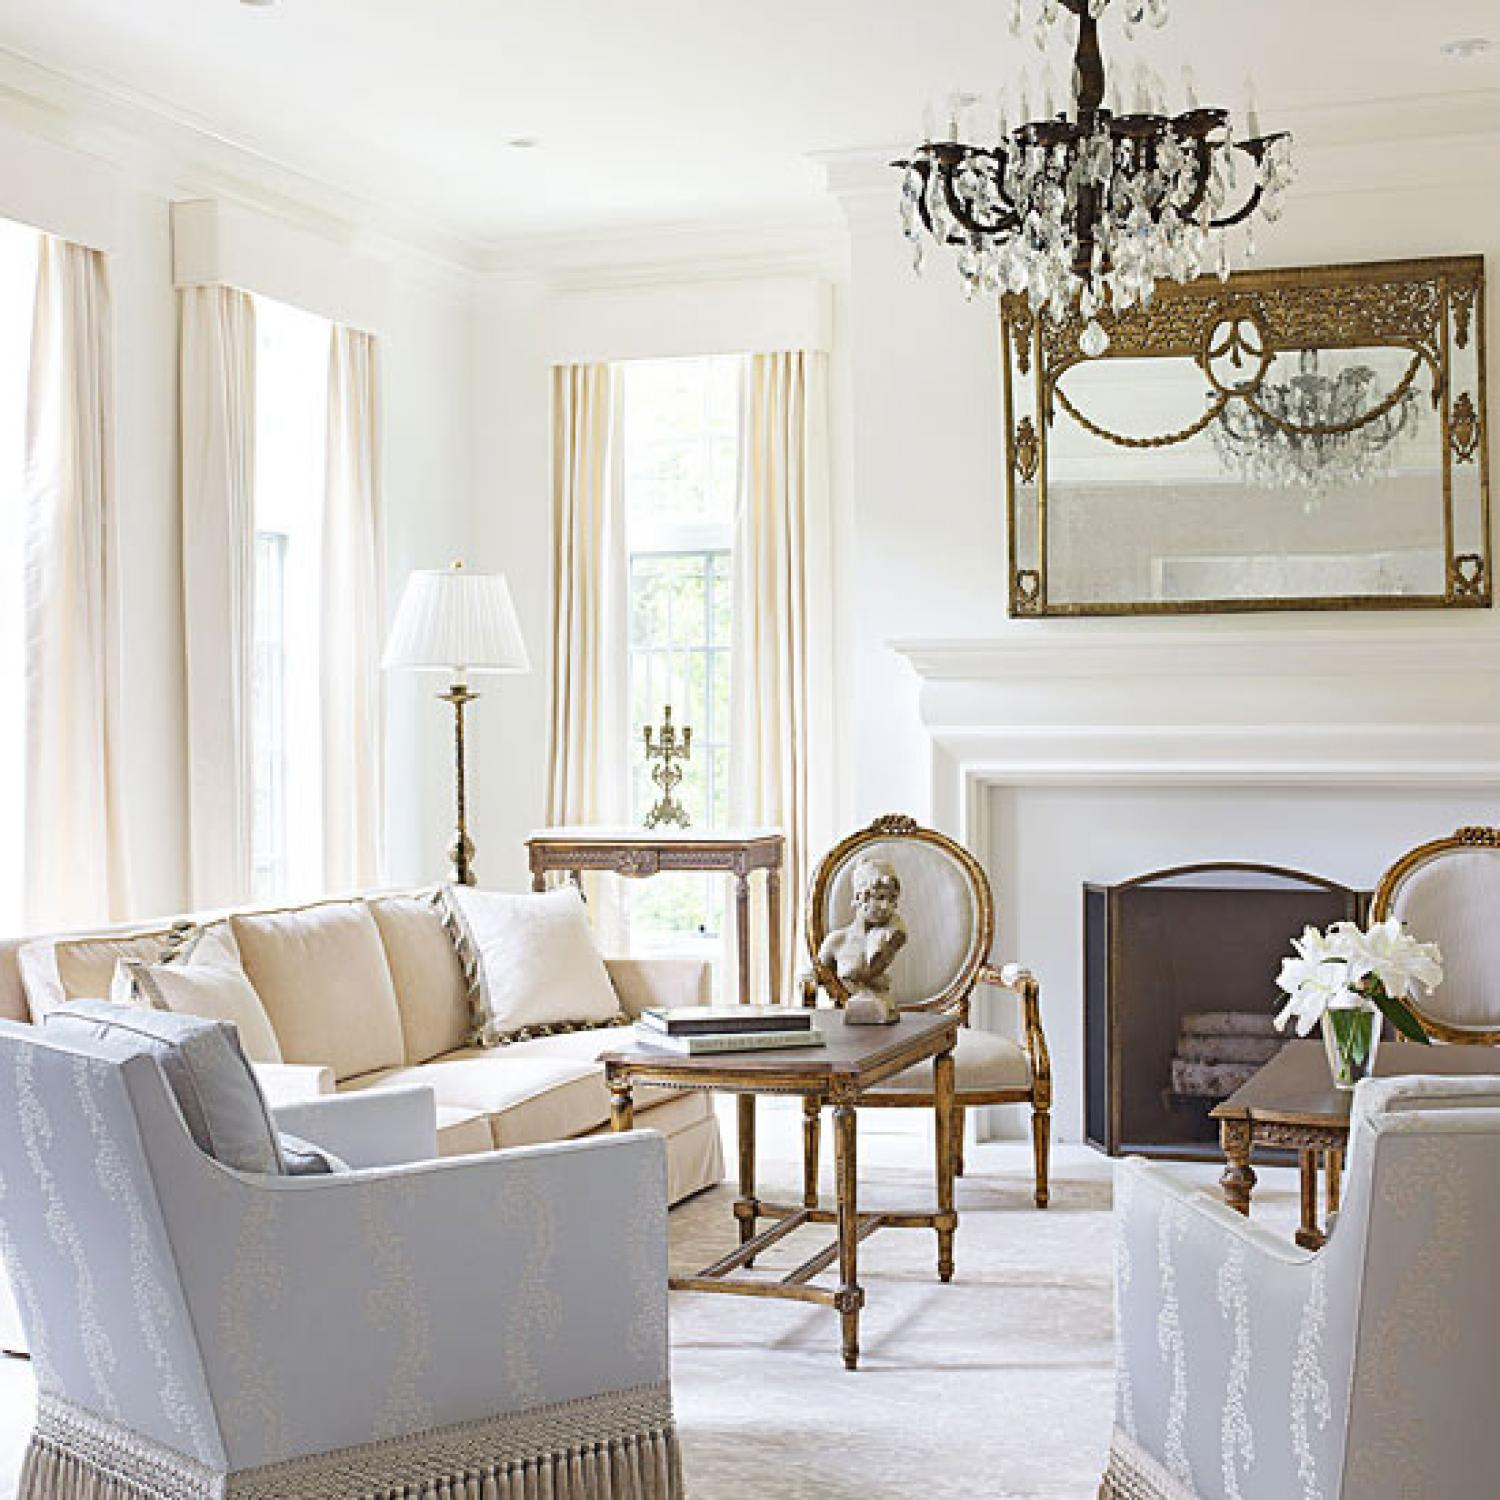 Bright White And Inviting Family Home Traditional Home